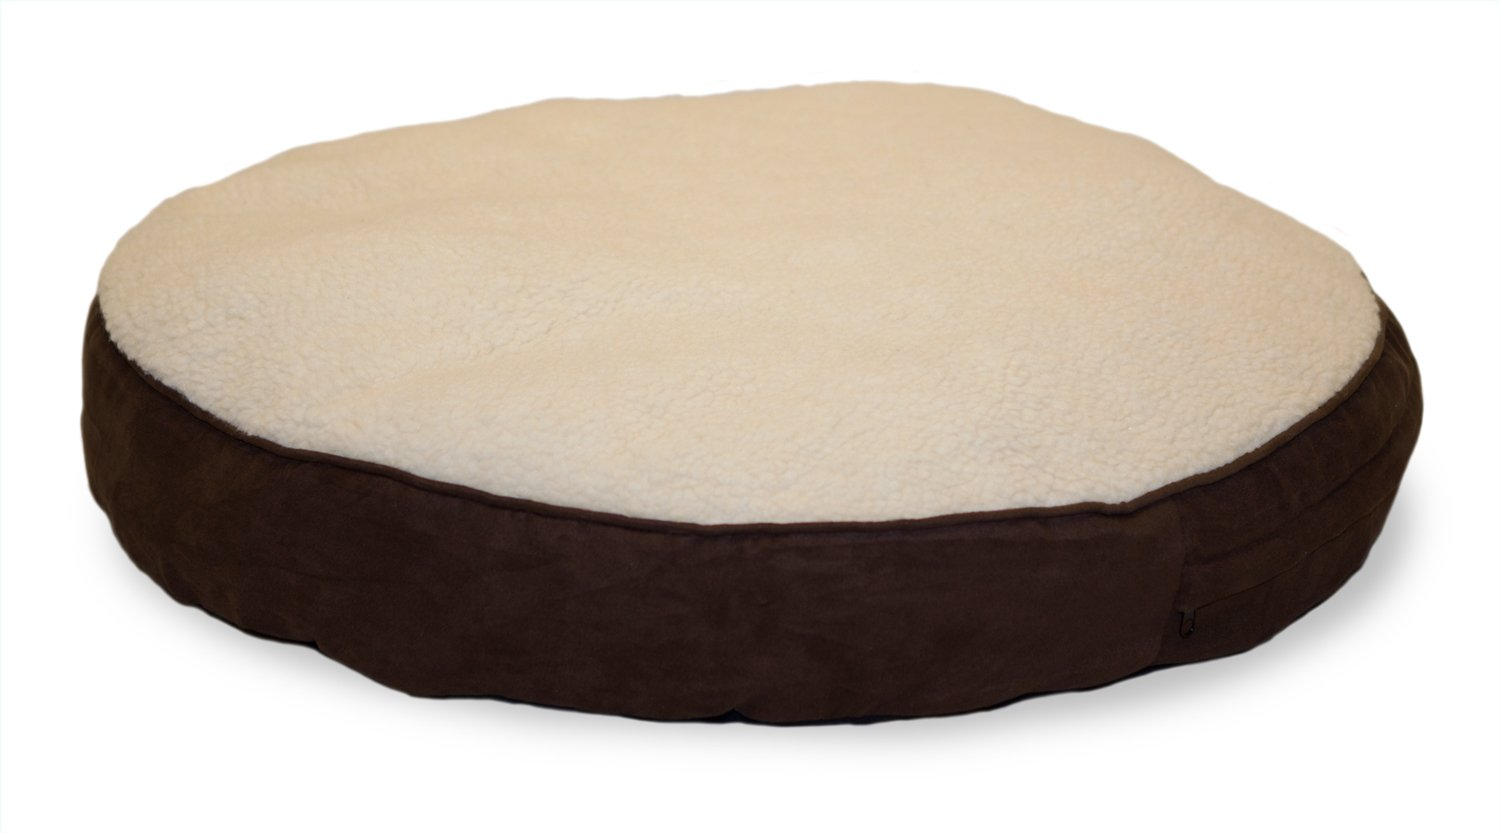 Espresso 26\ Espresso 26\ FurHaven Pet Dog Bed   Faux Sheepskin & Suede Round Pillow Pet Bed for Dogs & Cats, Espresso, 26-Inch